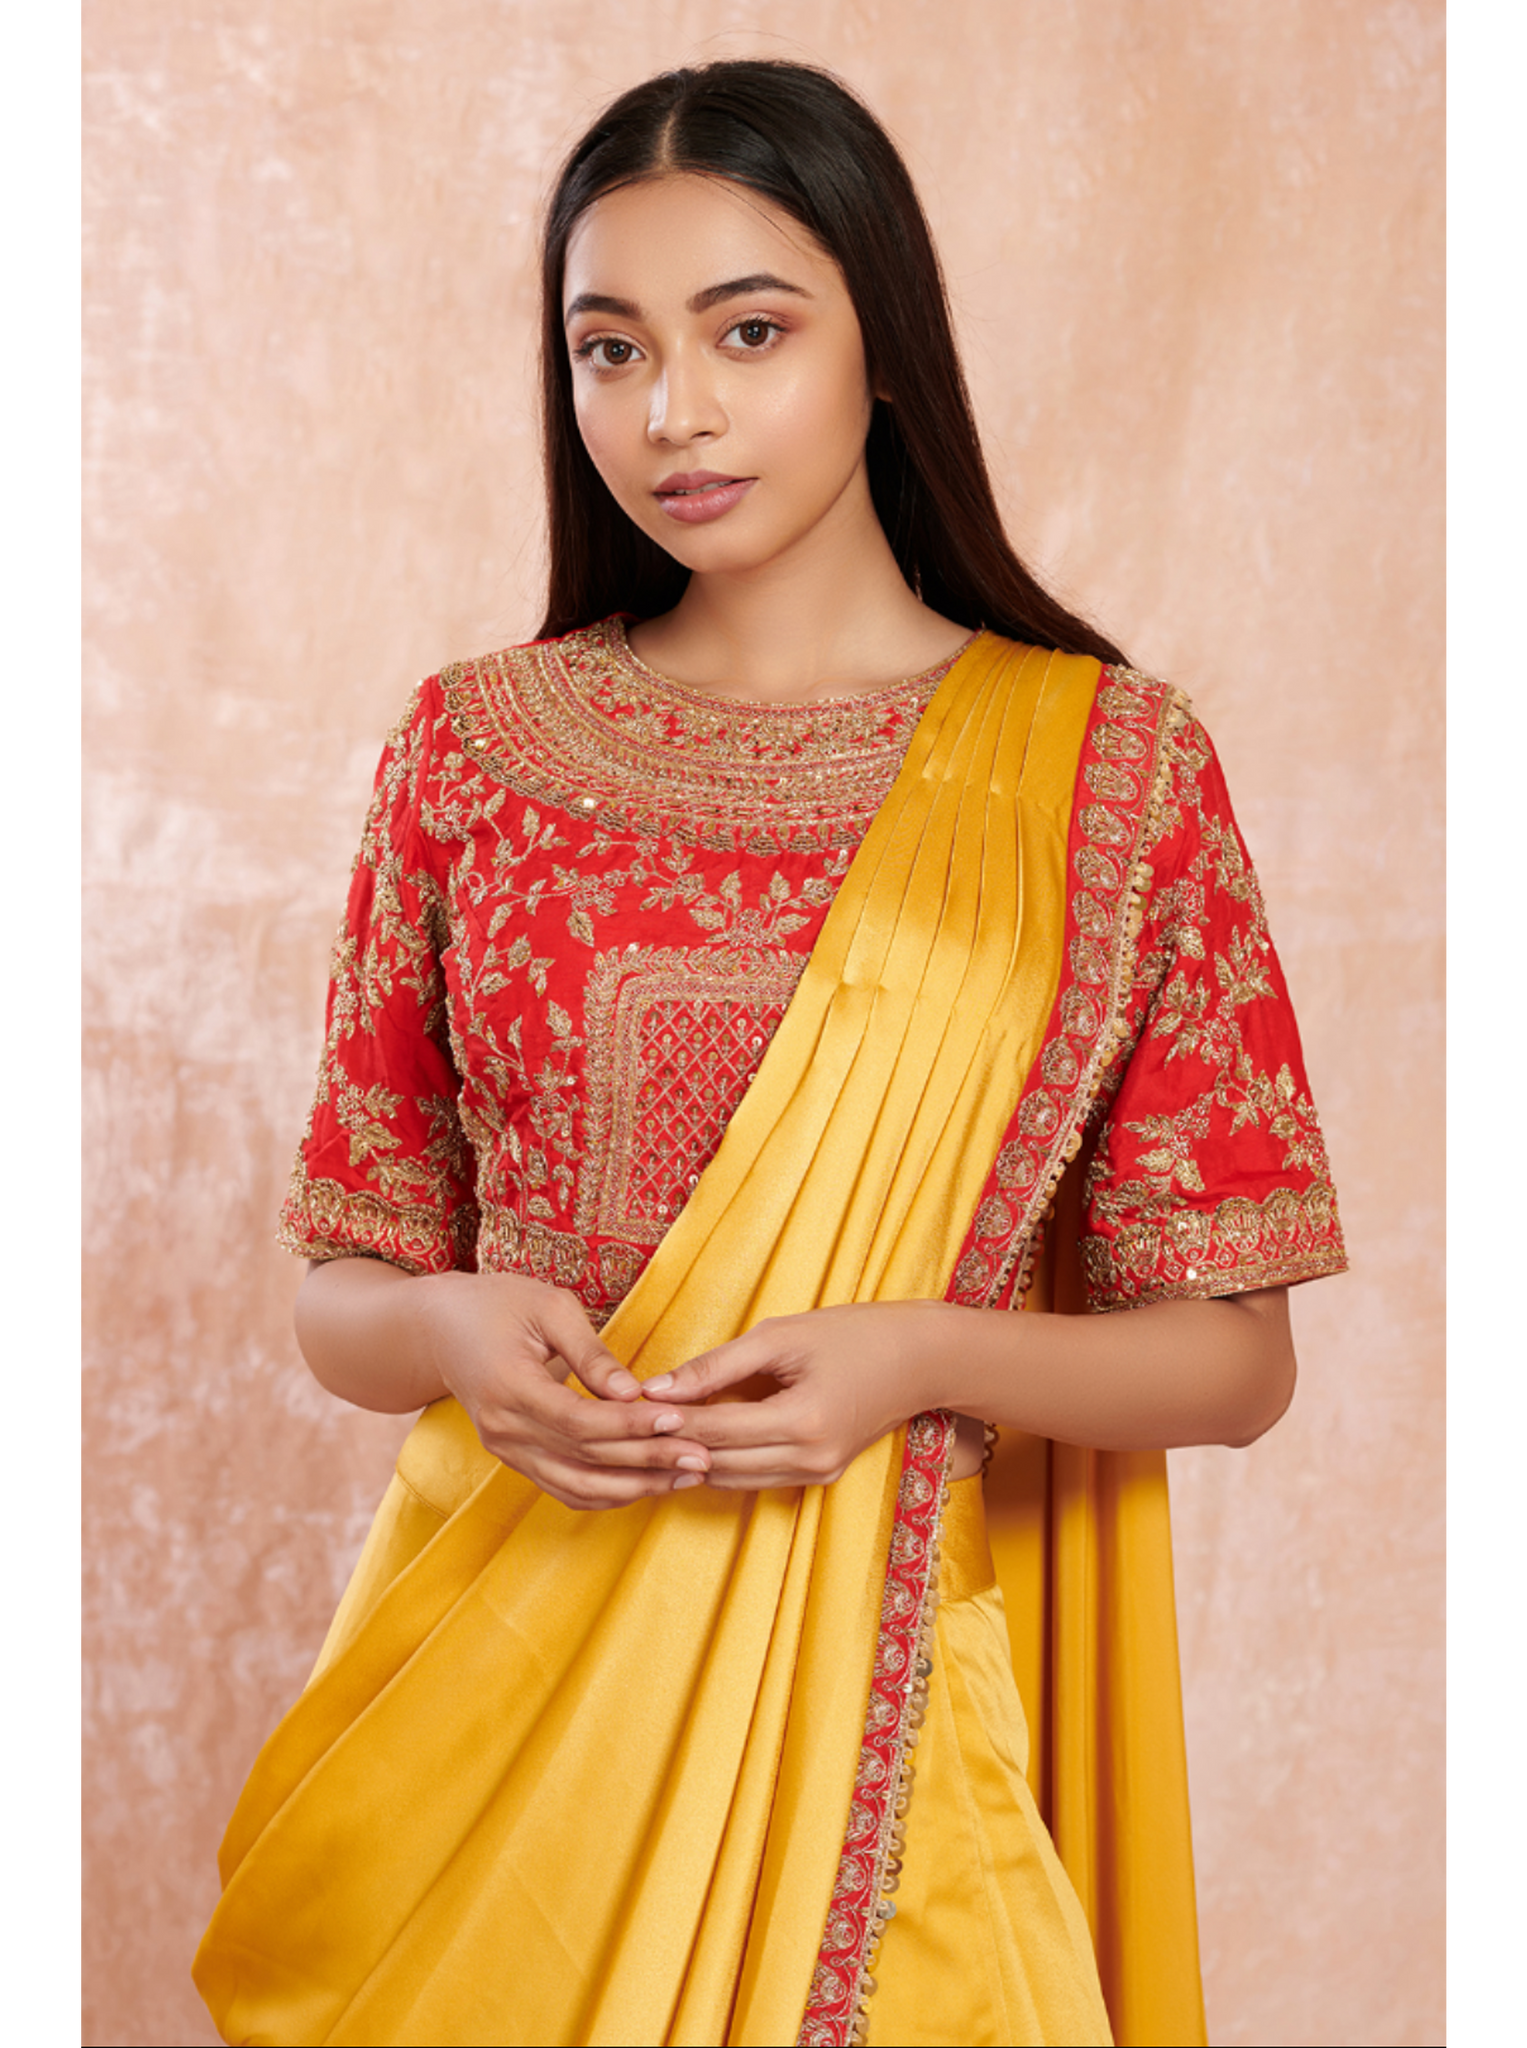 Canary Yellow Satin Saree with Heavy Red Blouse